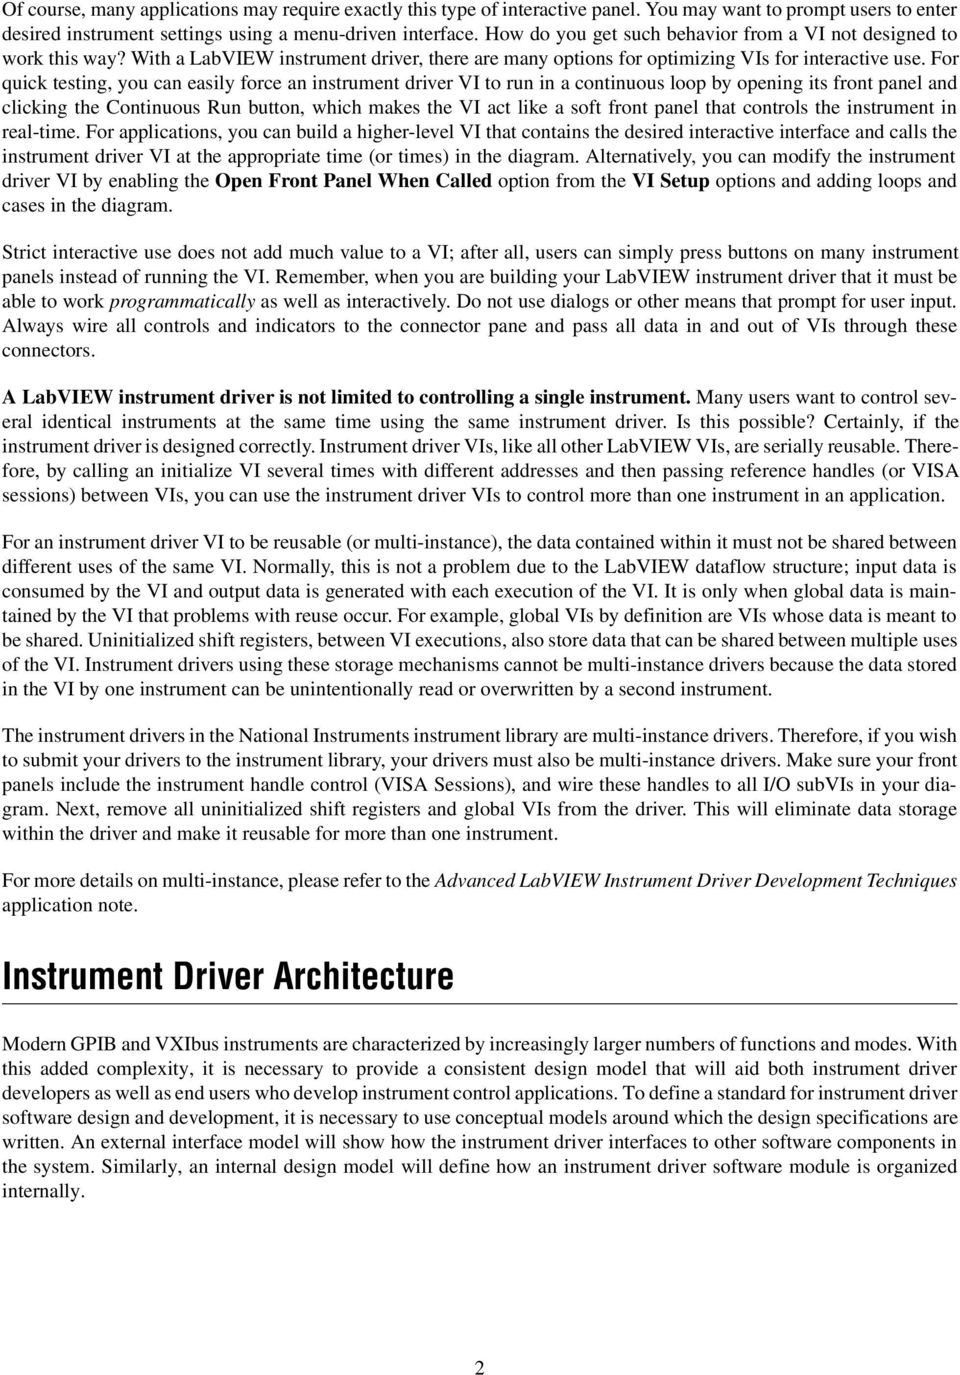 Developing a LabVIEW Instrument Driver - PDF Free Download